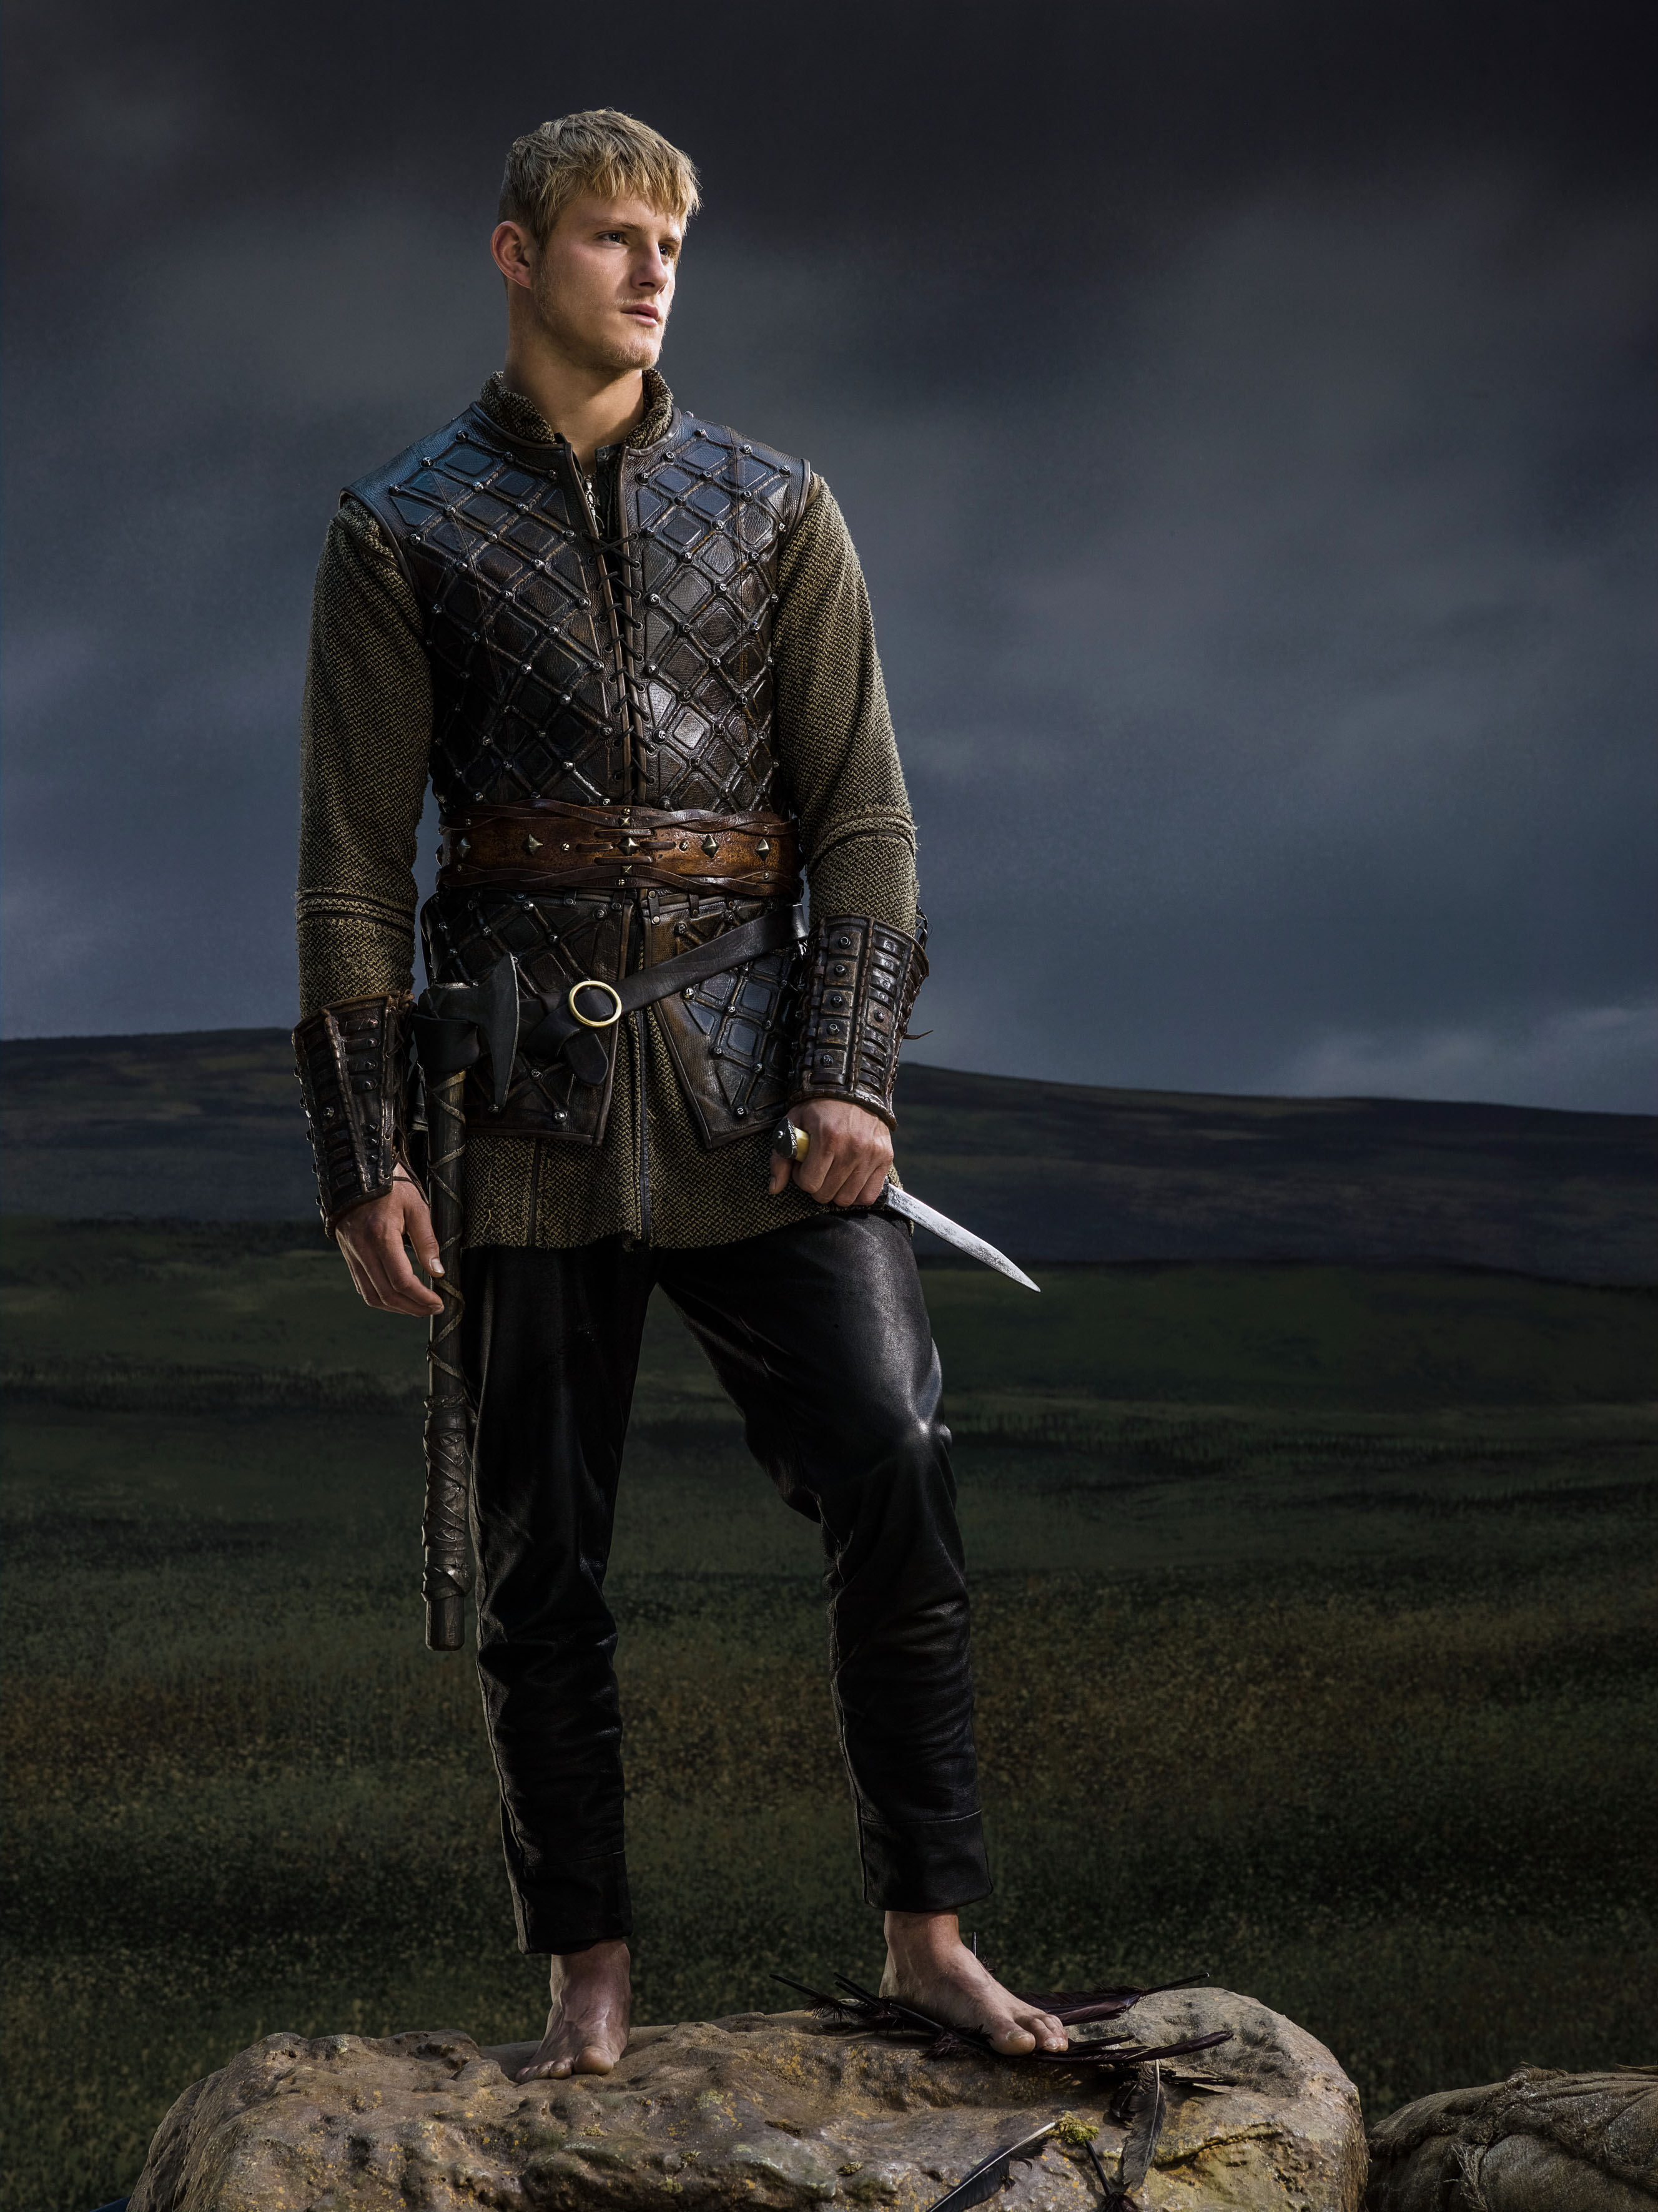 http://images6.fanpop.com/image/photos/37600000/Vikings-Season-2-Bjorn-Lothbrok-official-picture-vikings-tv-series-37651268-2655-3543.jpg